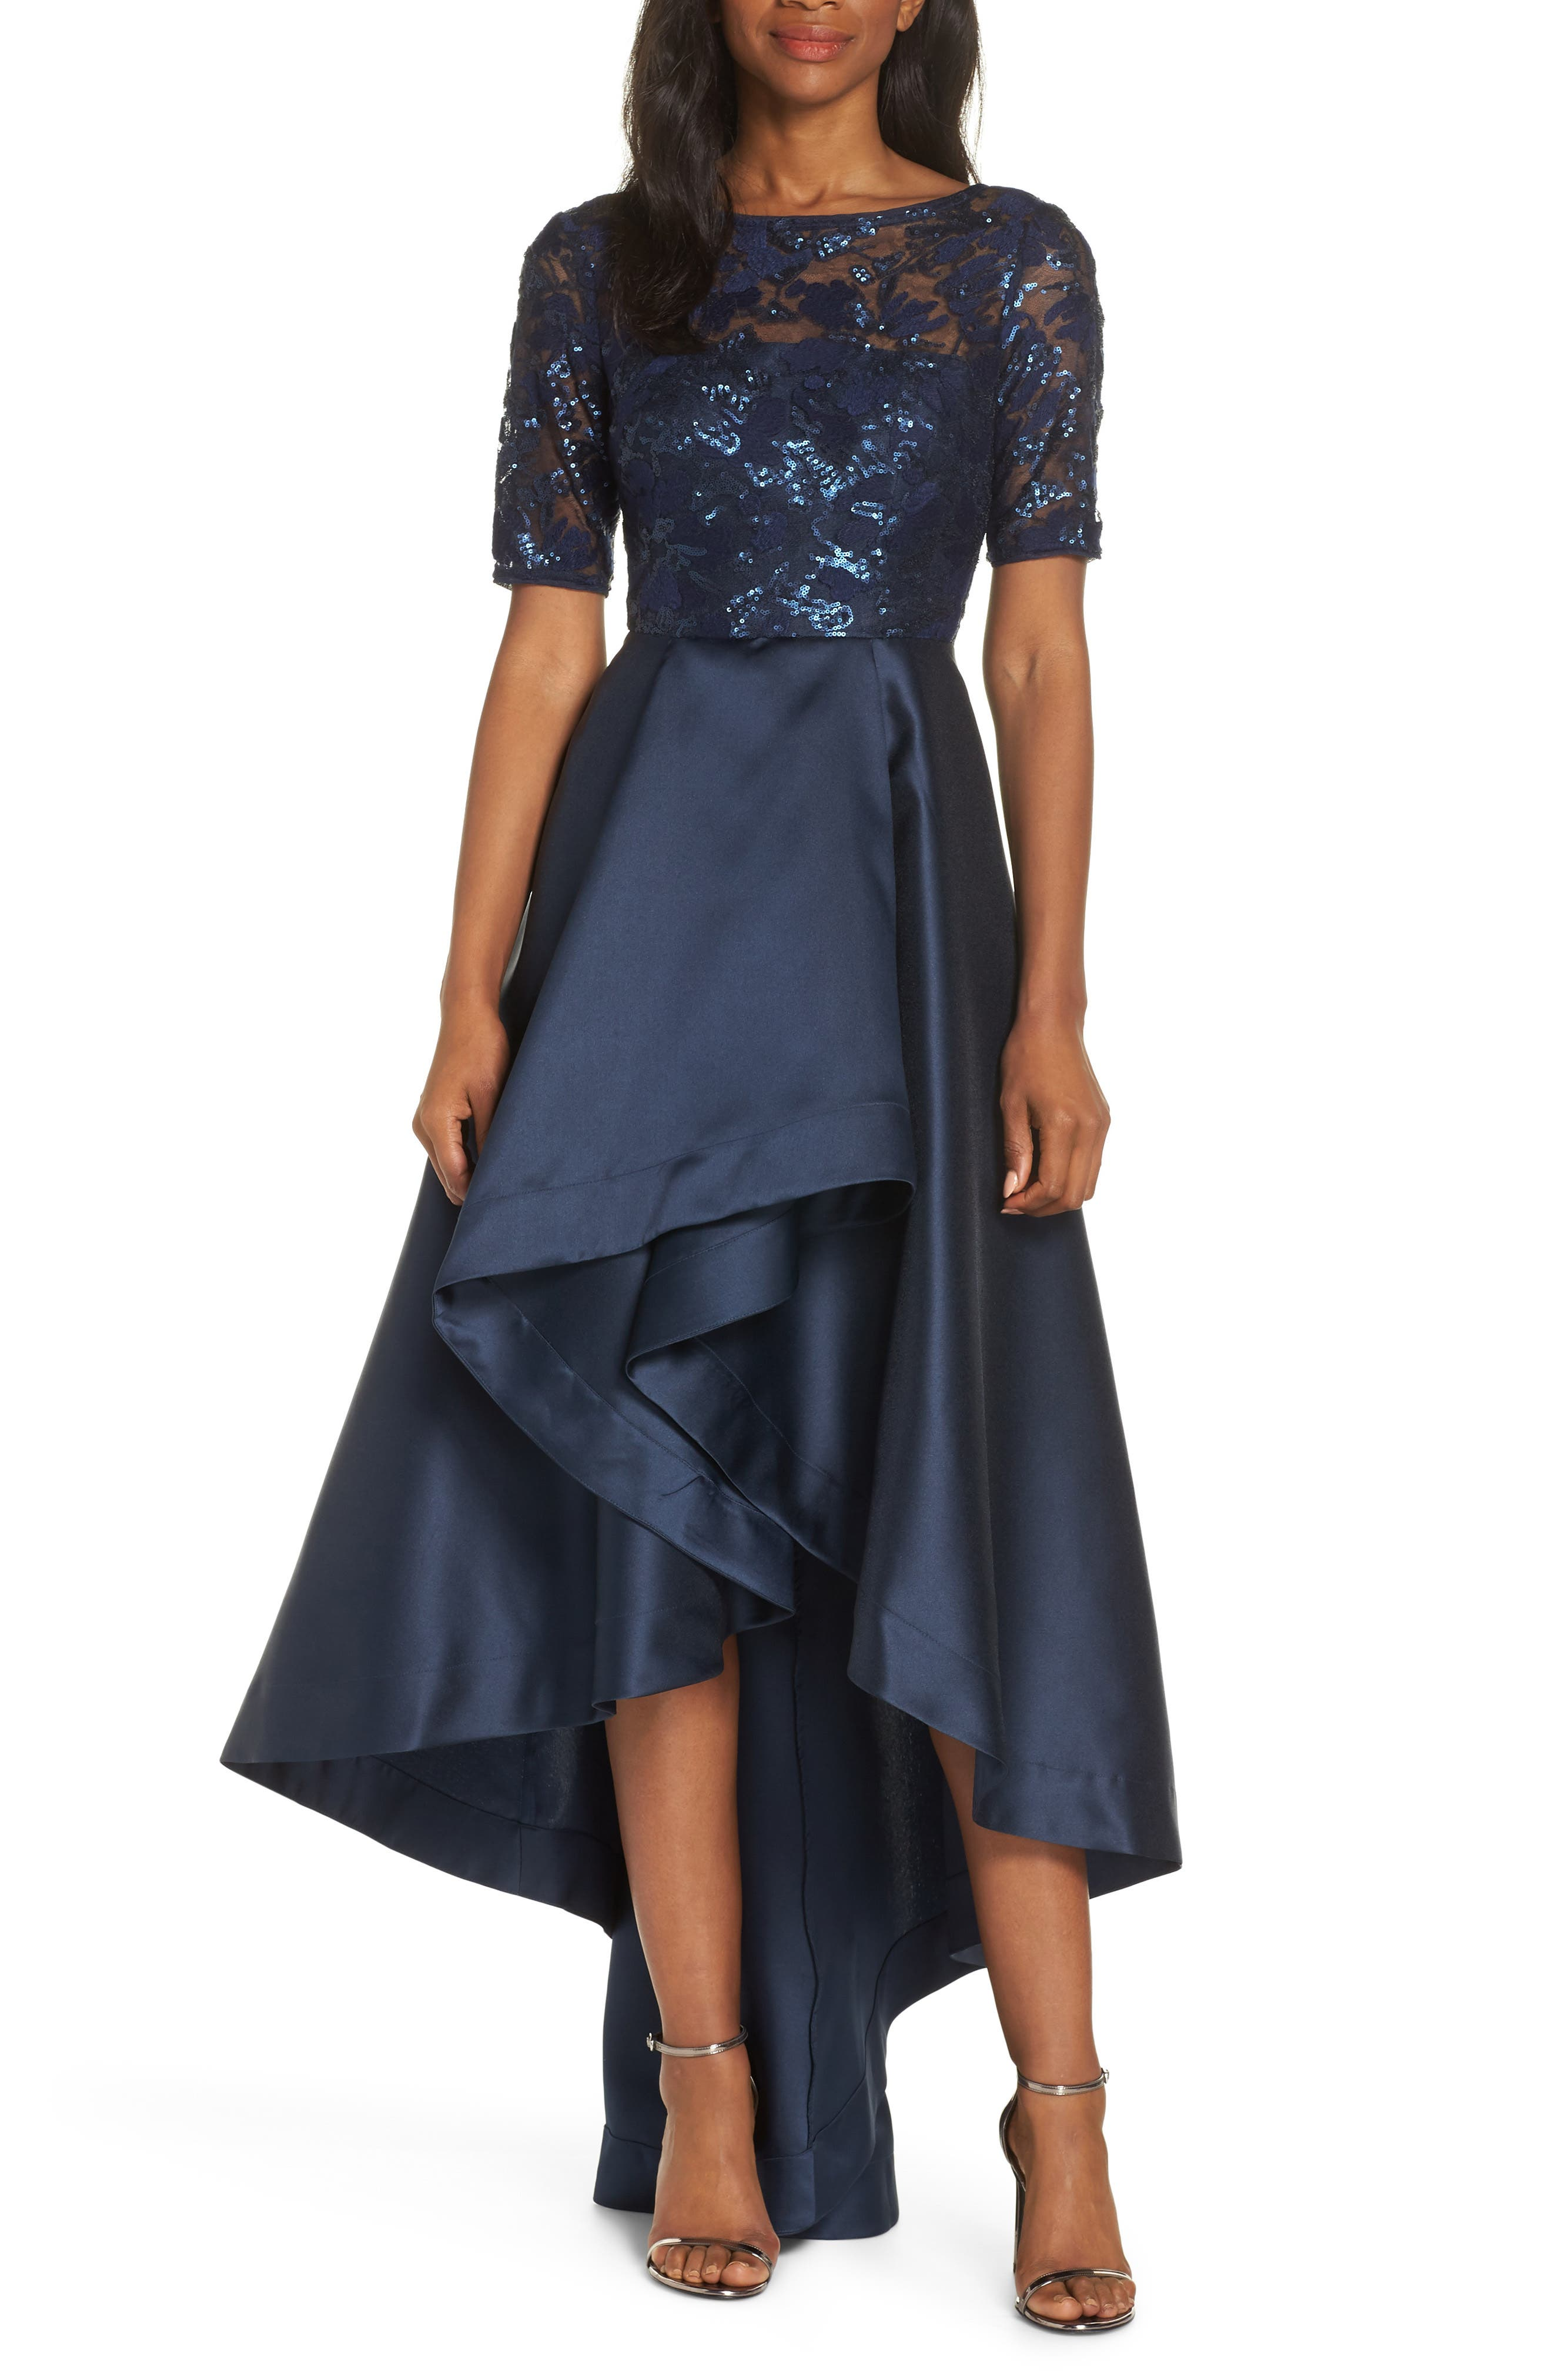 ADRIANNA PAPELL Sequin Lace High/Low Evening Dress, Main, color, MIDNIGHT